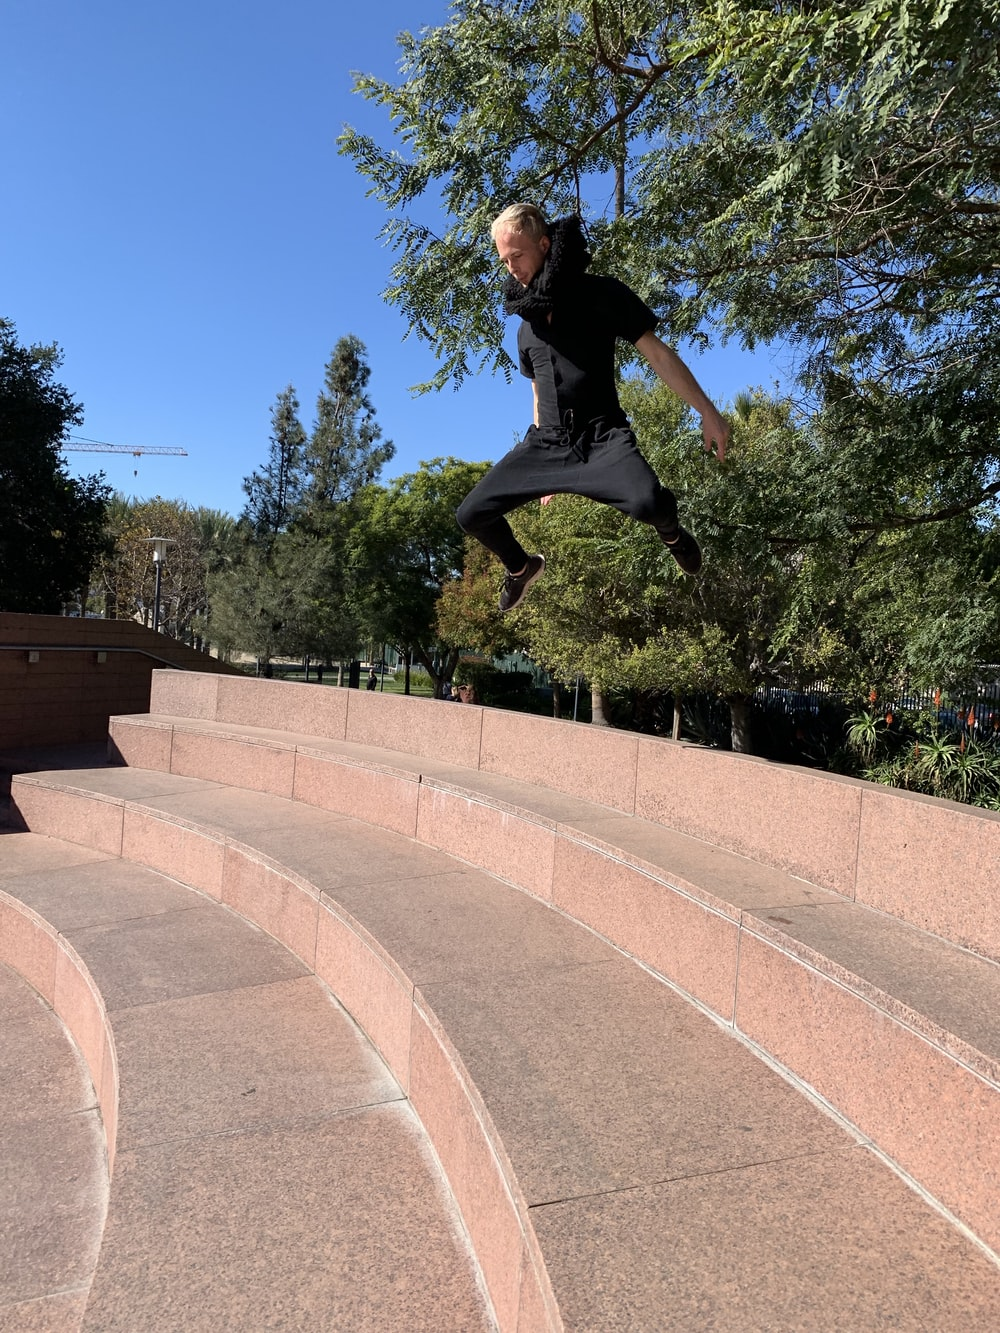 man in black jumping over stairs